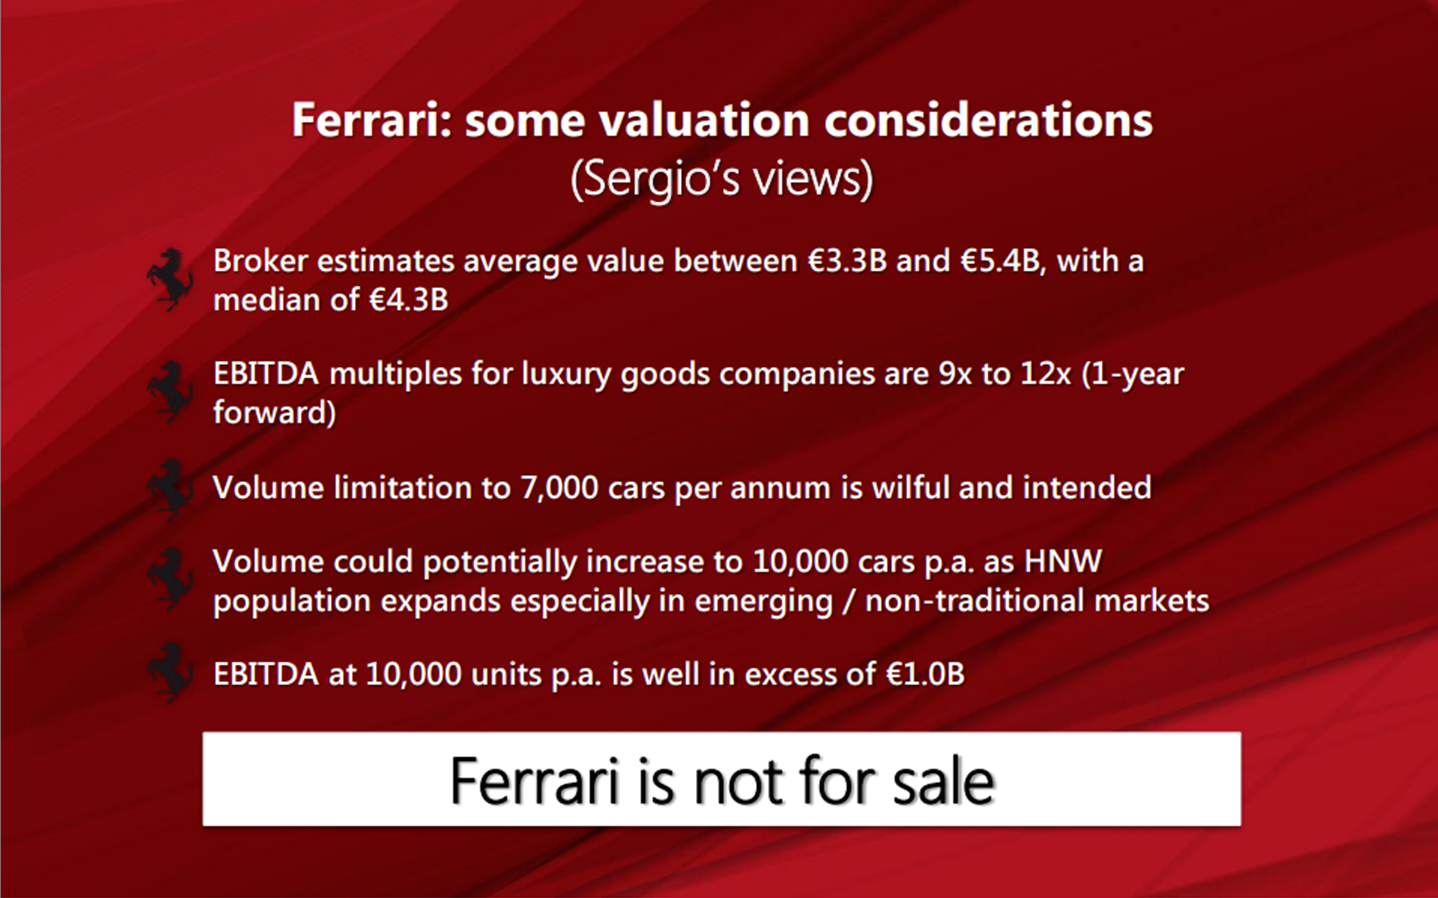 Share price after 6 month from the ferraris ipo